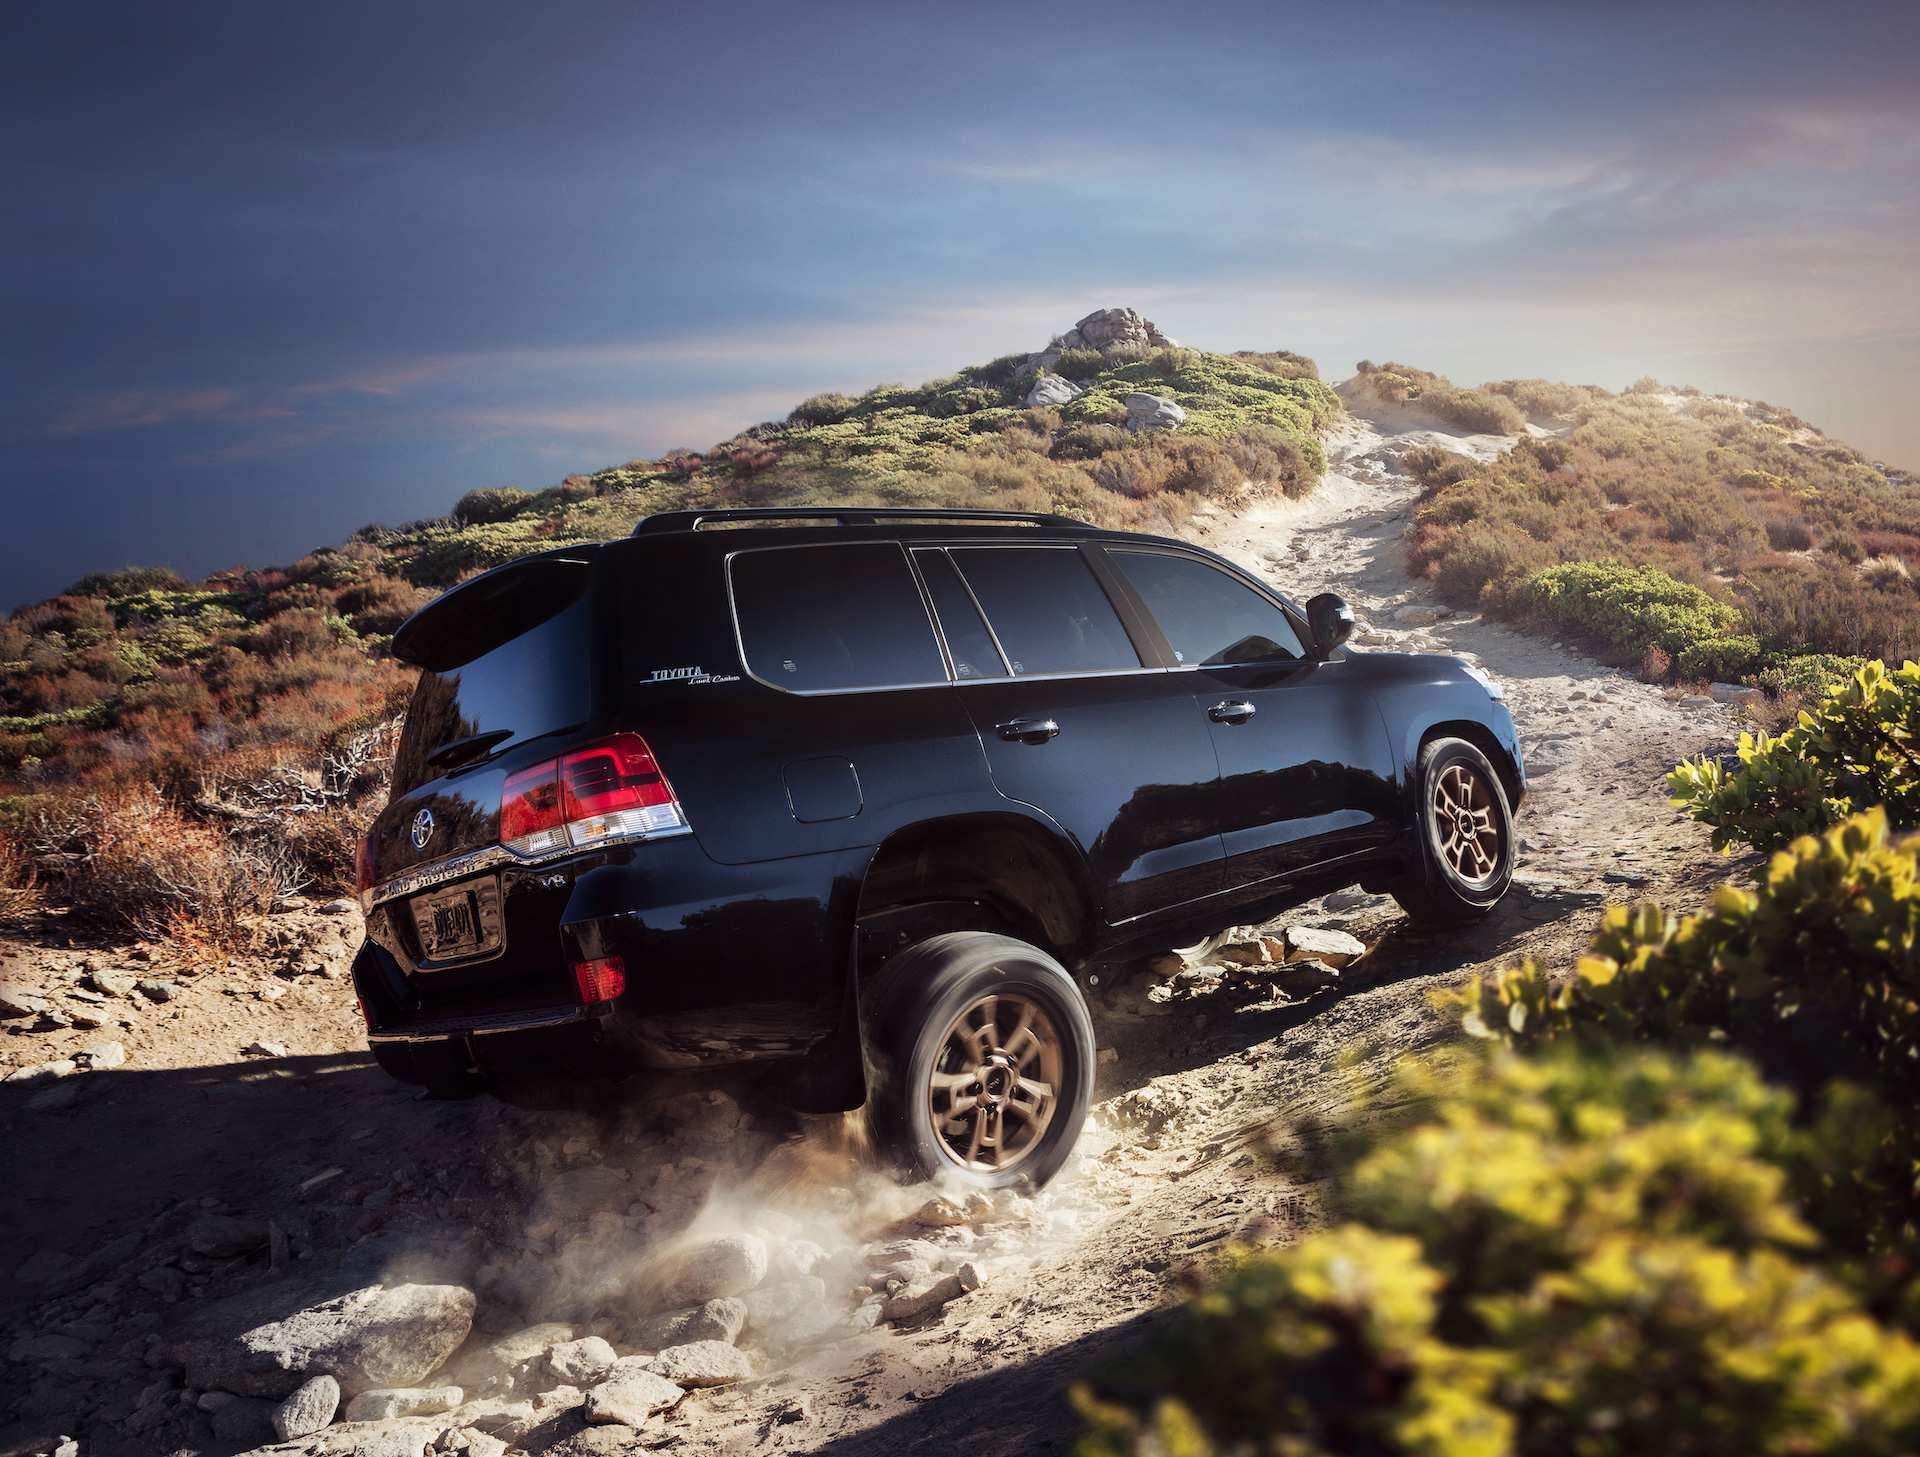 54 Best Toyota Land Cruiser 2020 Price Design And Review